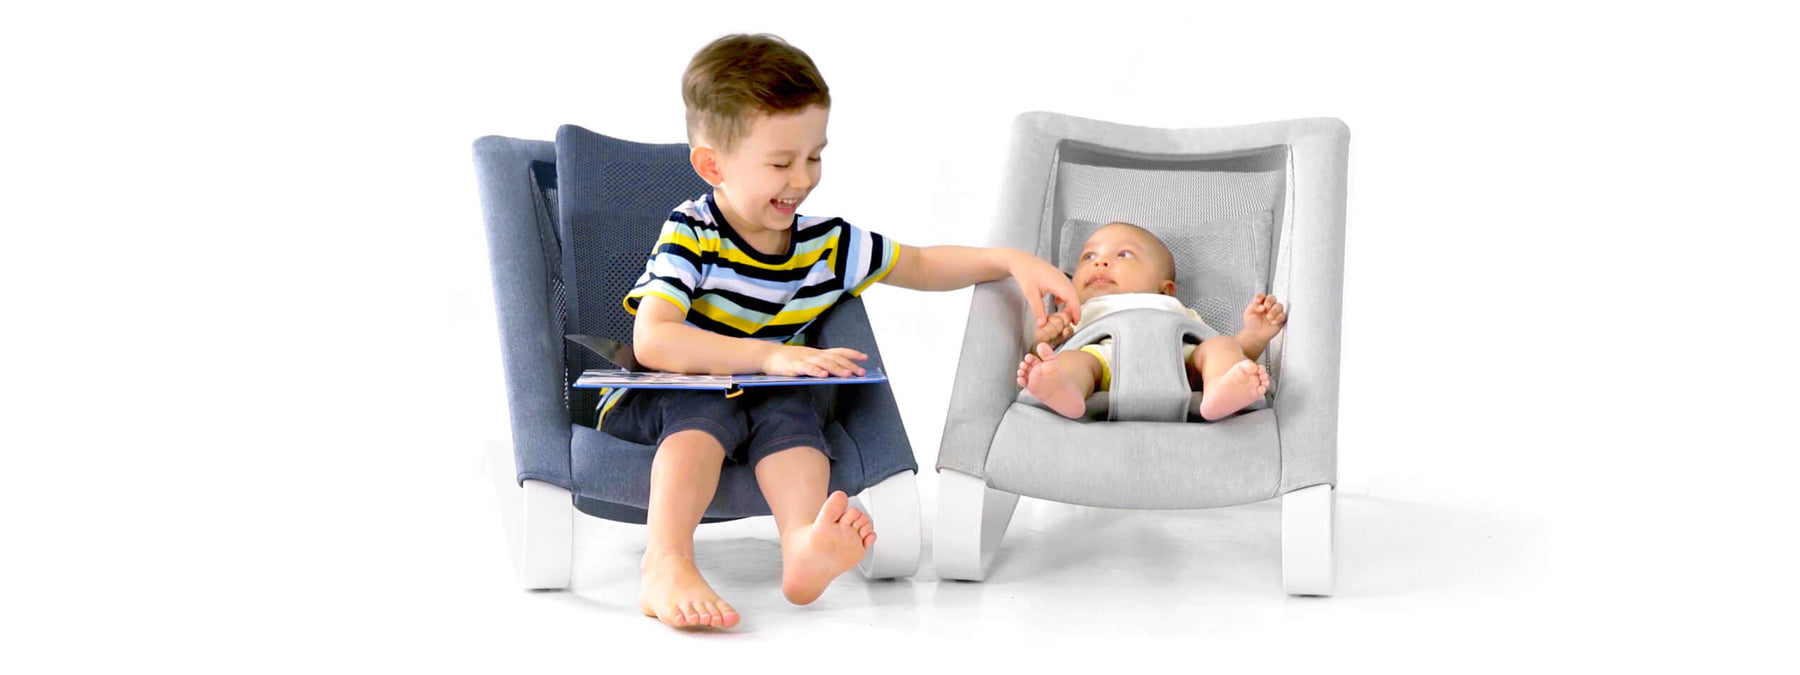 Two little boys on their infant bouncer seat